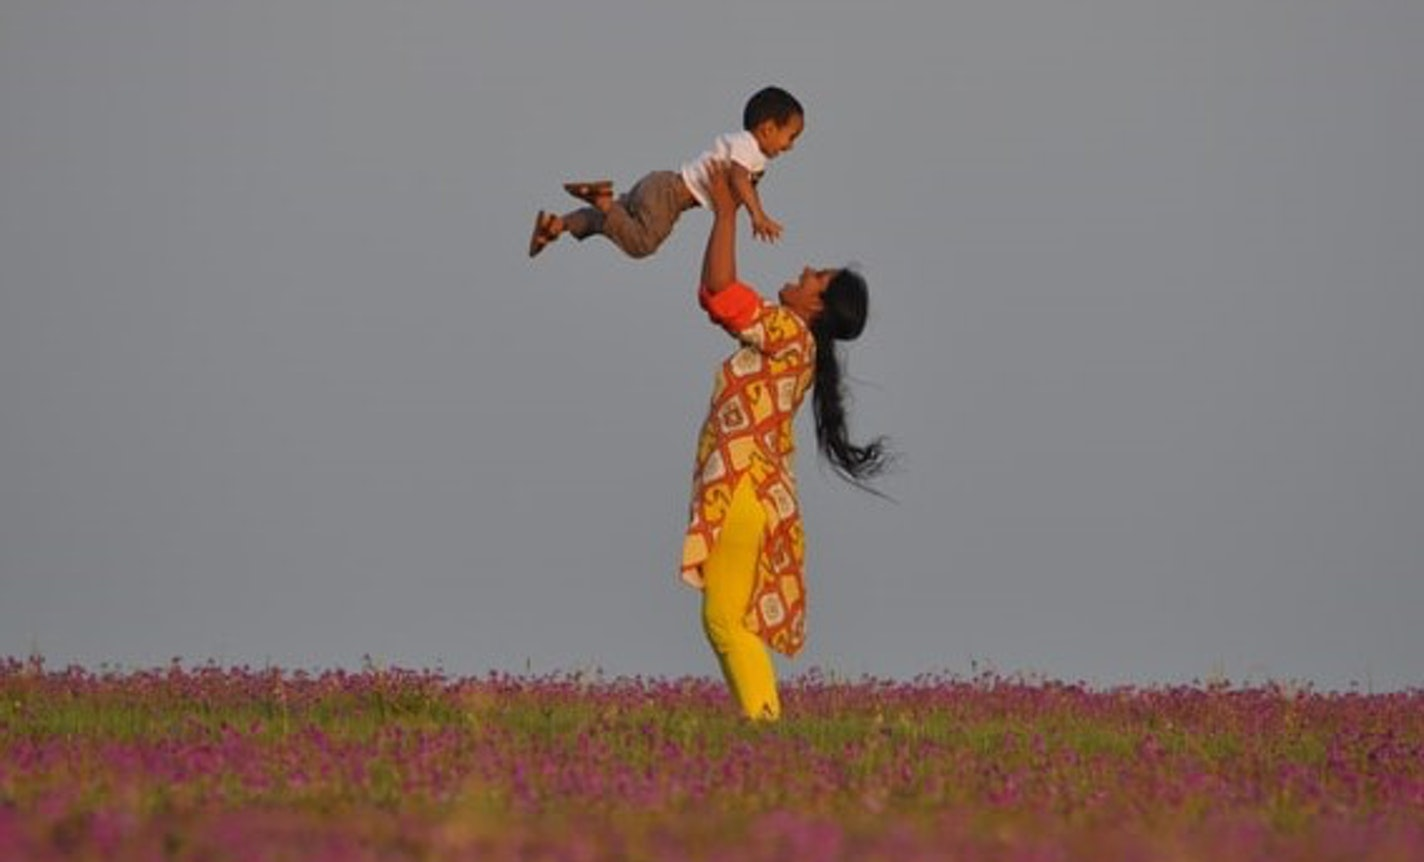 Dancing the Mother's Strength